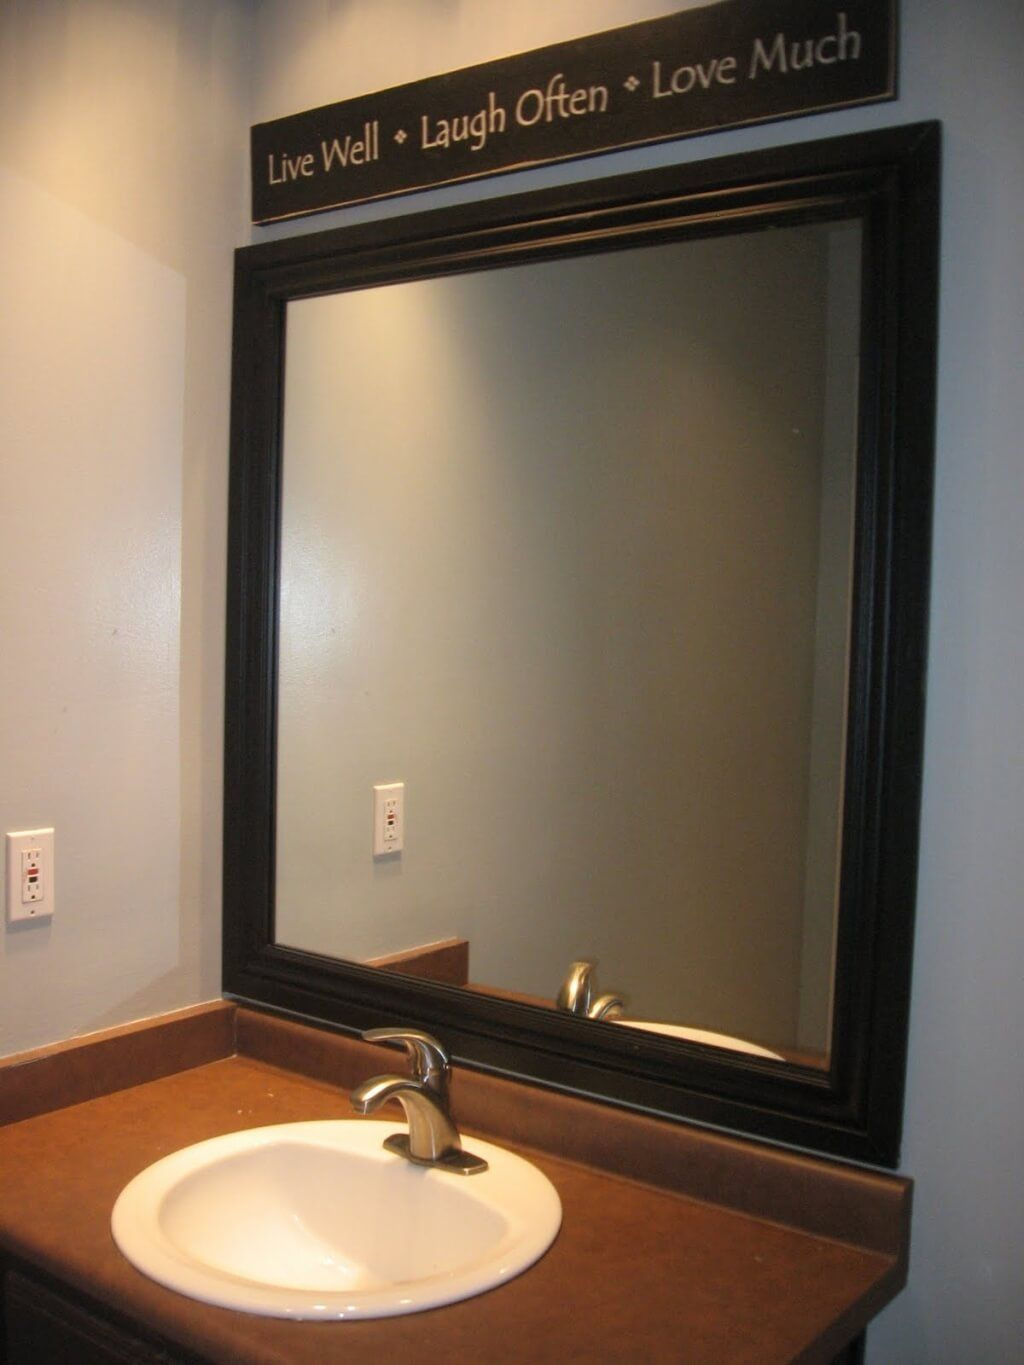 Decorative Mirrors for Bathrooms Lovely Bathroom Contemporary Wall Mirrors for Bathrooms with